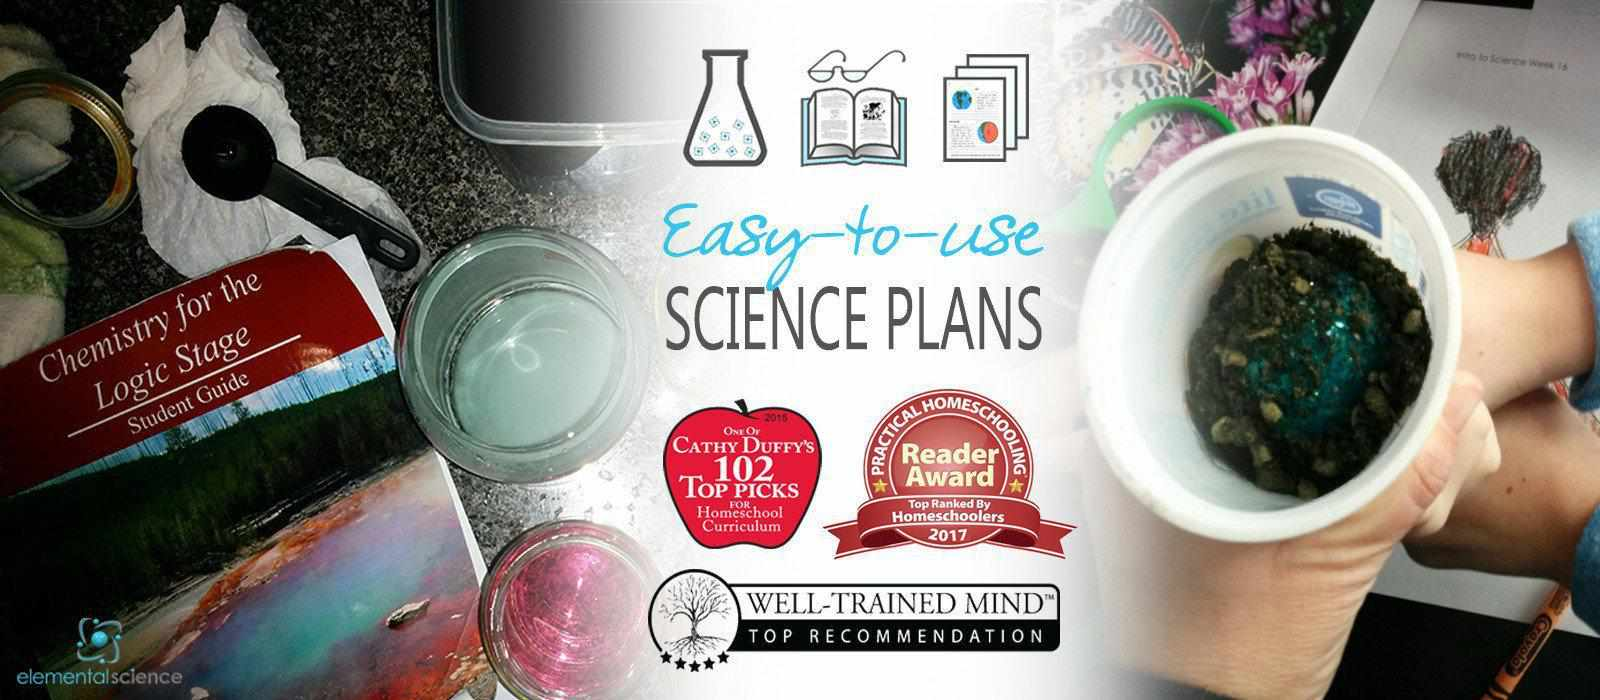 Award-winning Plans for Classical Science from Elemental Science